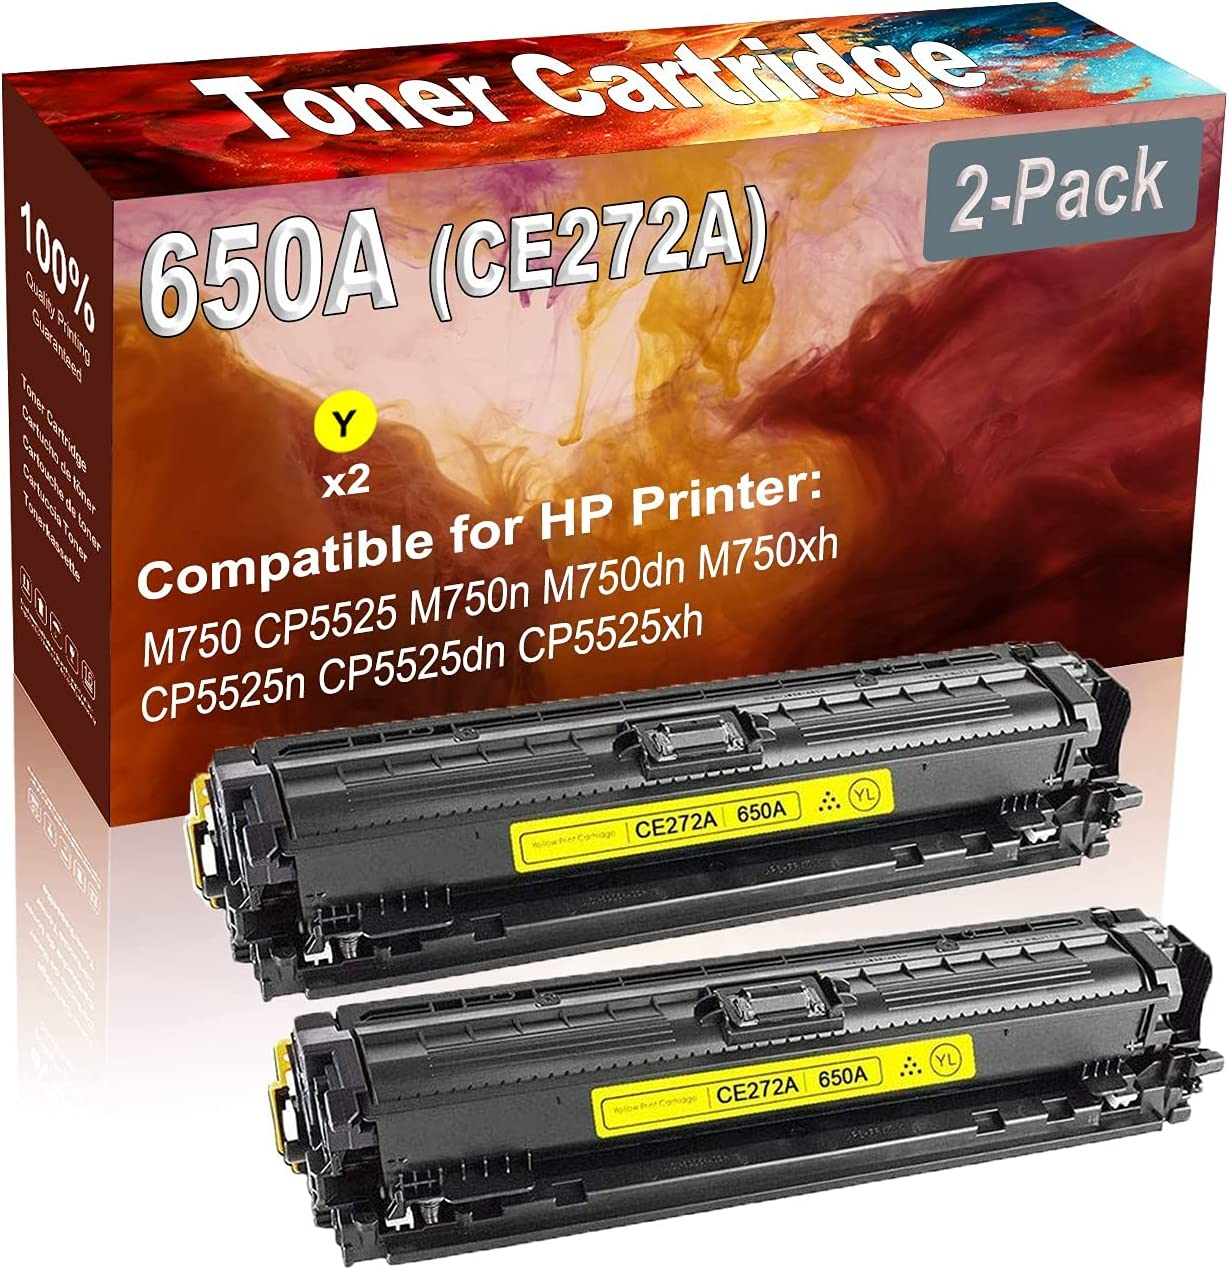 2-Pack (Yellow) Compatible High Yield 650A (CE272A) Printer Toner Cartridge use for HP M750 CP5525 M750n Printers